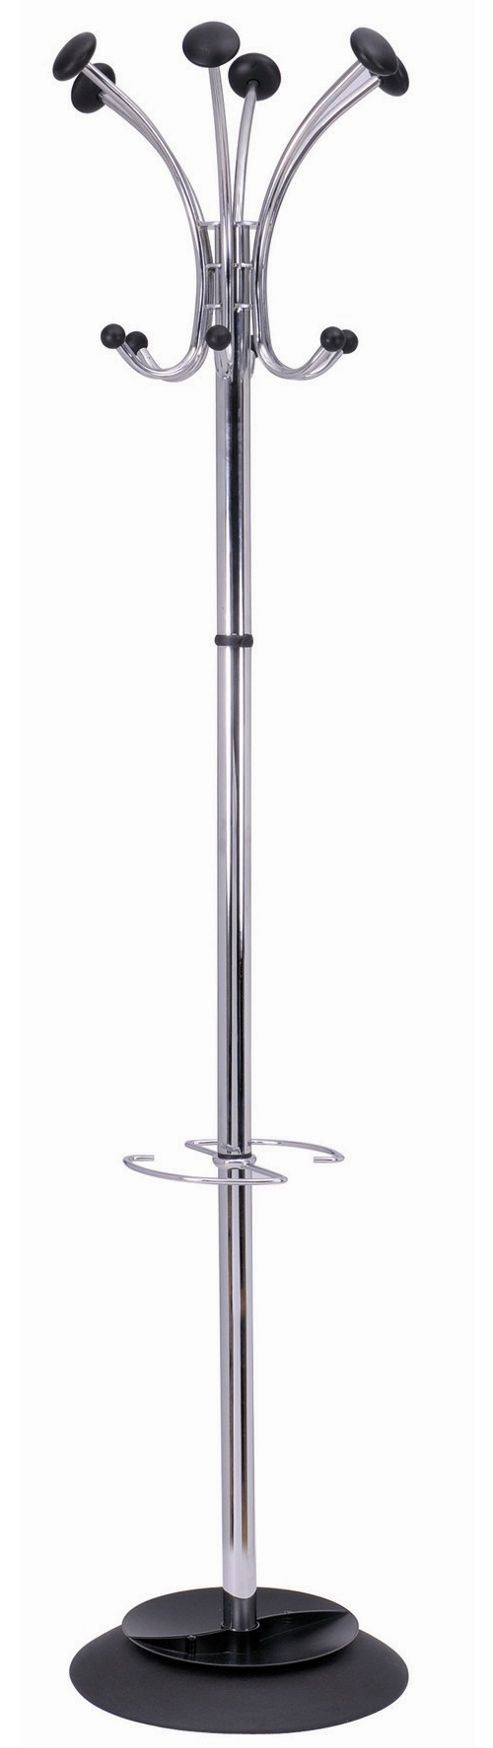 12 Hook Coatstand - Chrome